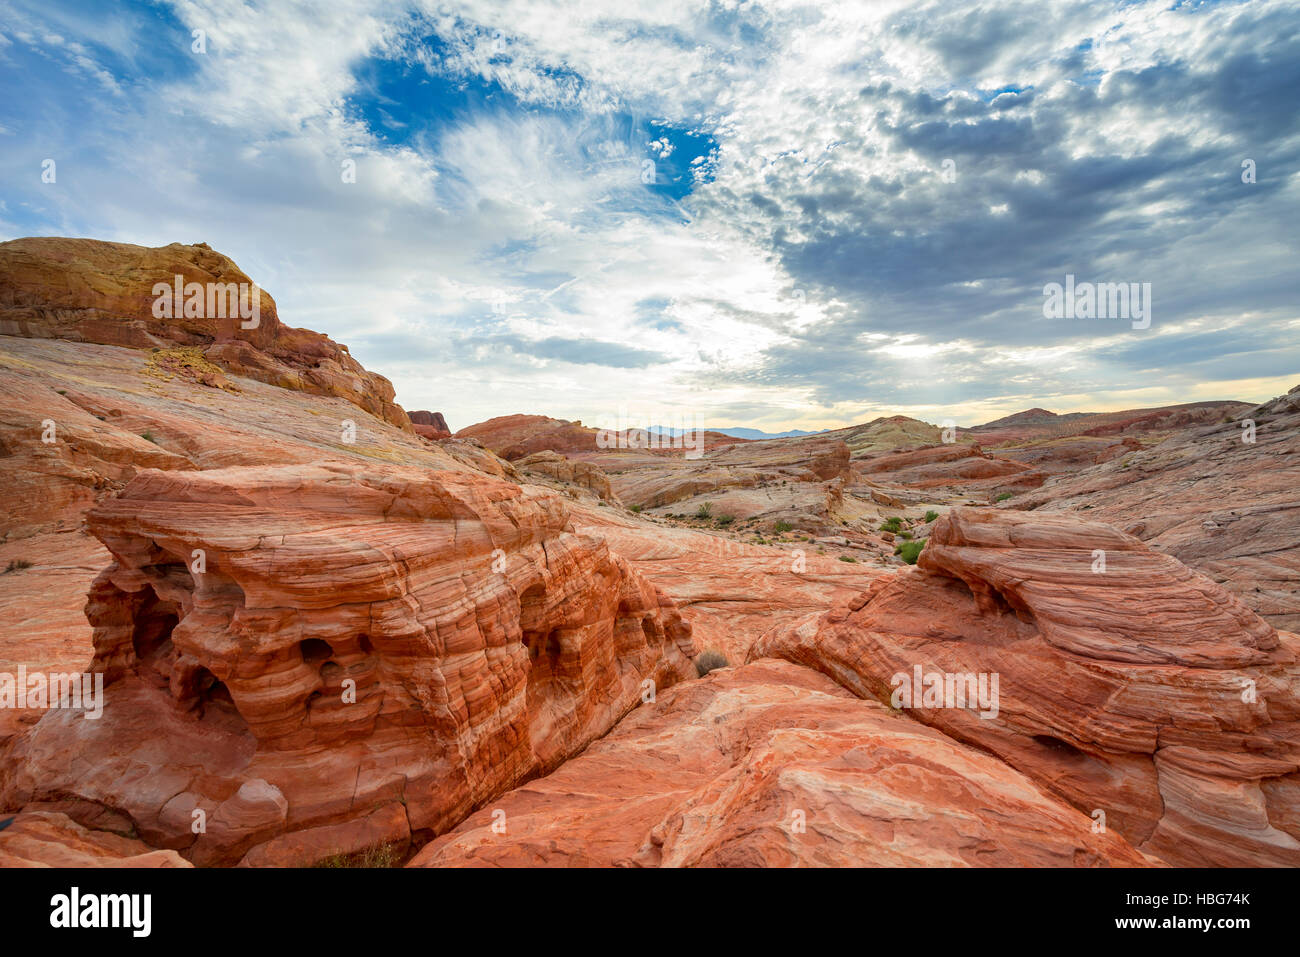 Orange-red rock formations, sandstone, White Domes Trail, Valley of Fire State Park, Mojave Desert, Nevada, USA - Stock Image